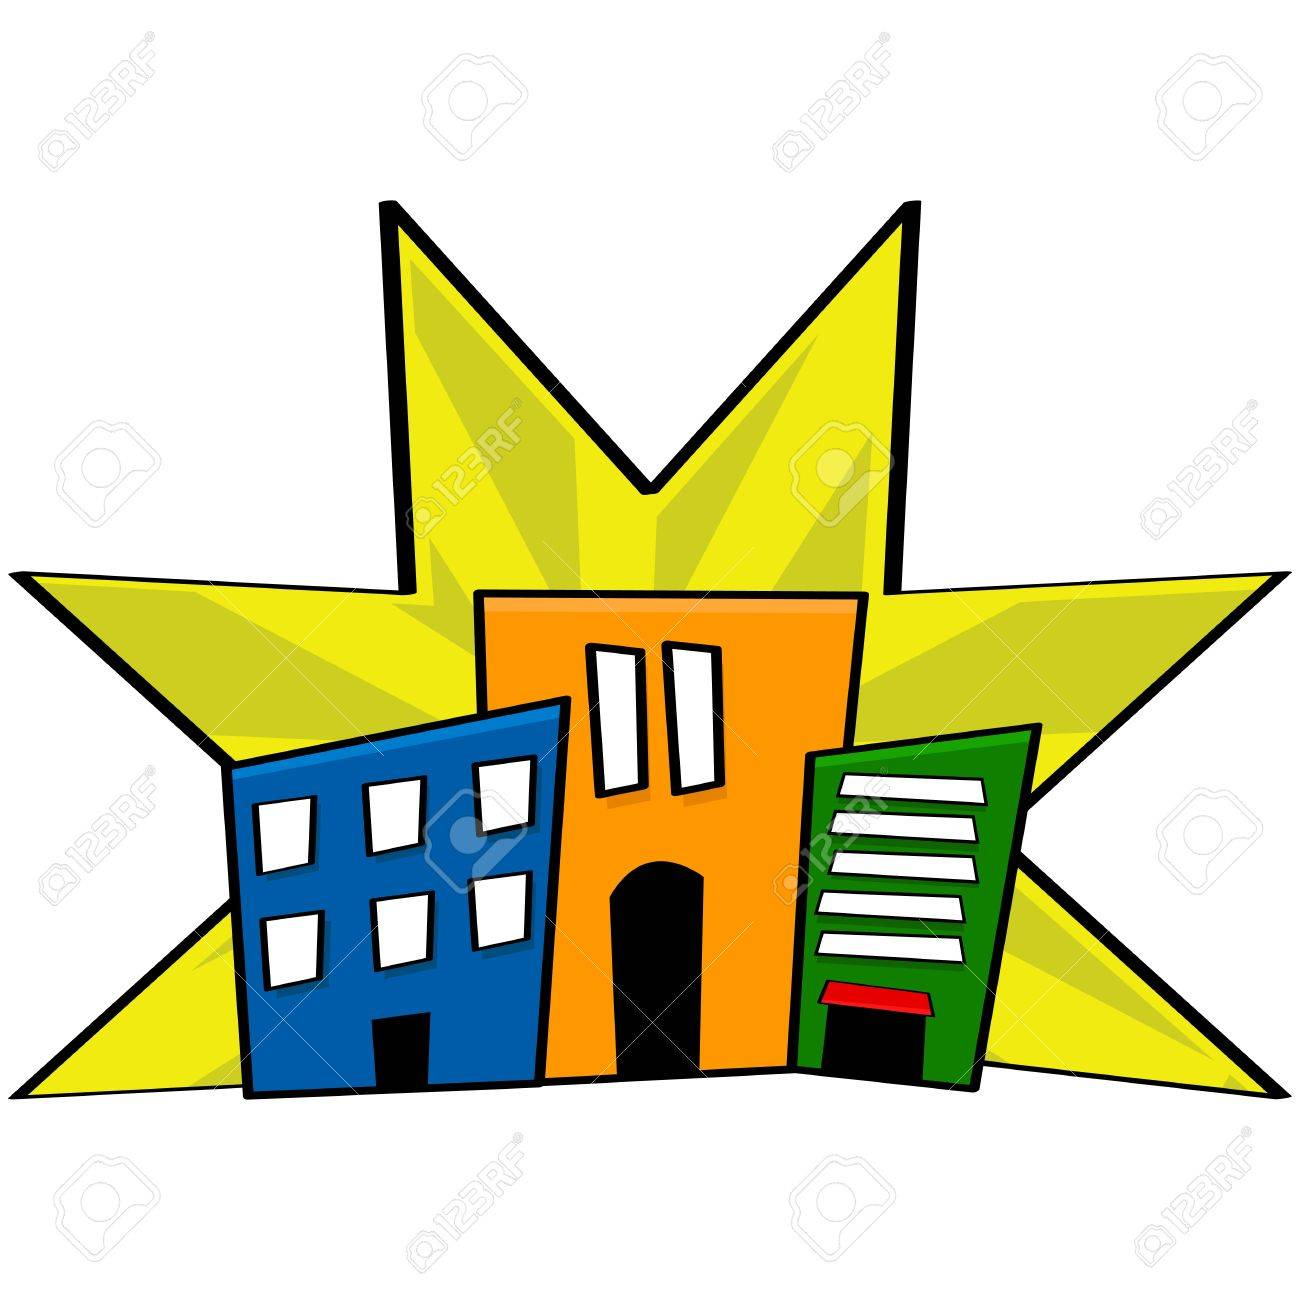 Cartoon illustration showing stylized buildings from a downtown core in different colors Stock Vector - 16616703